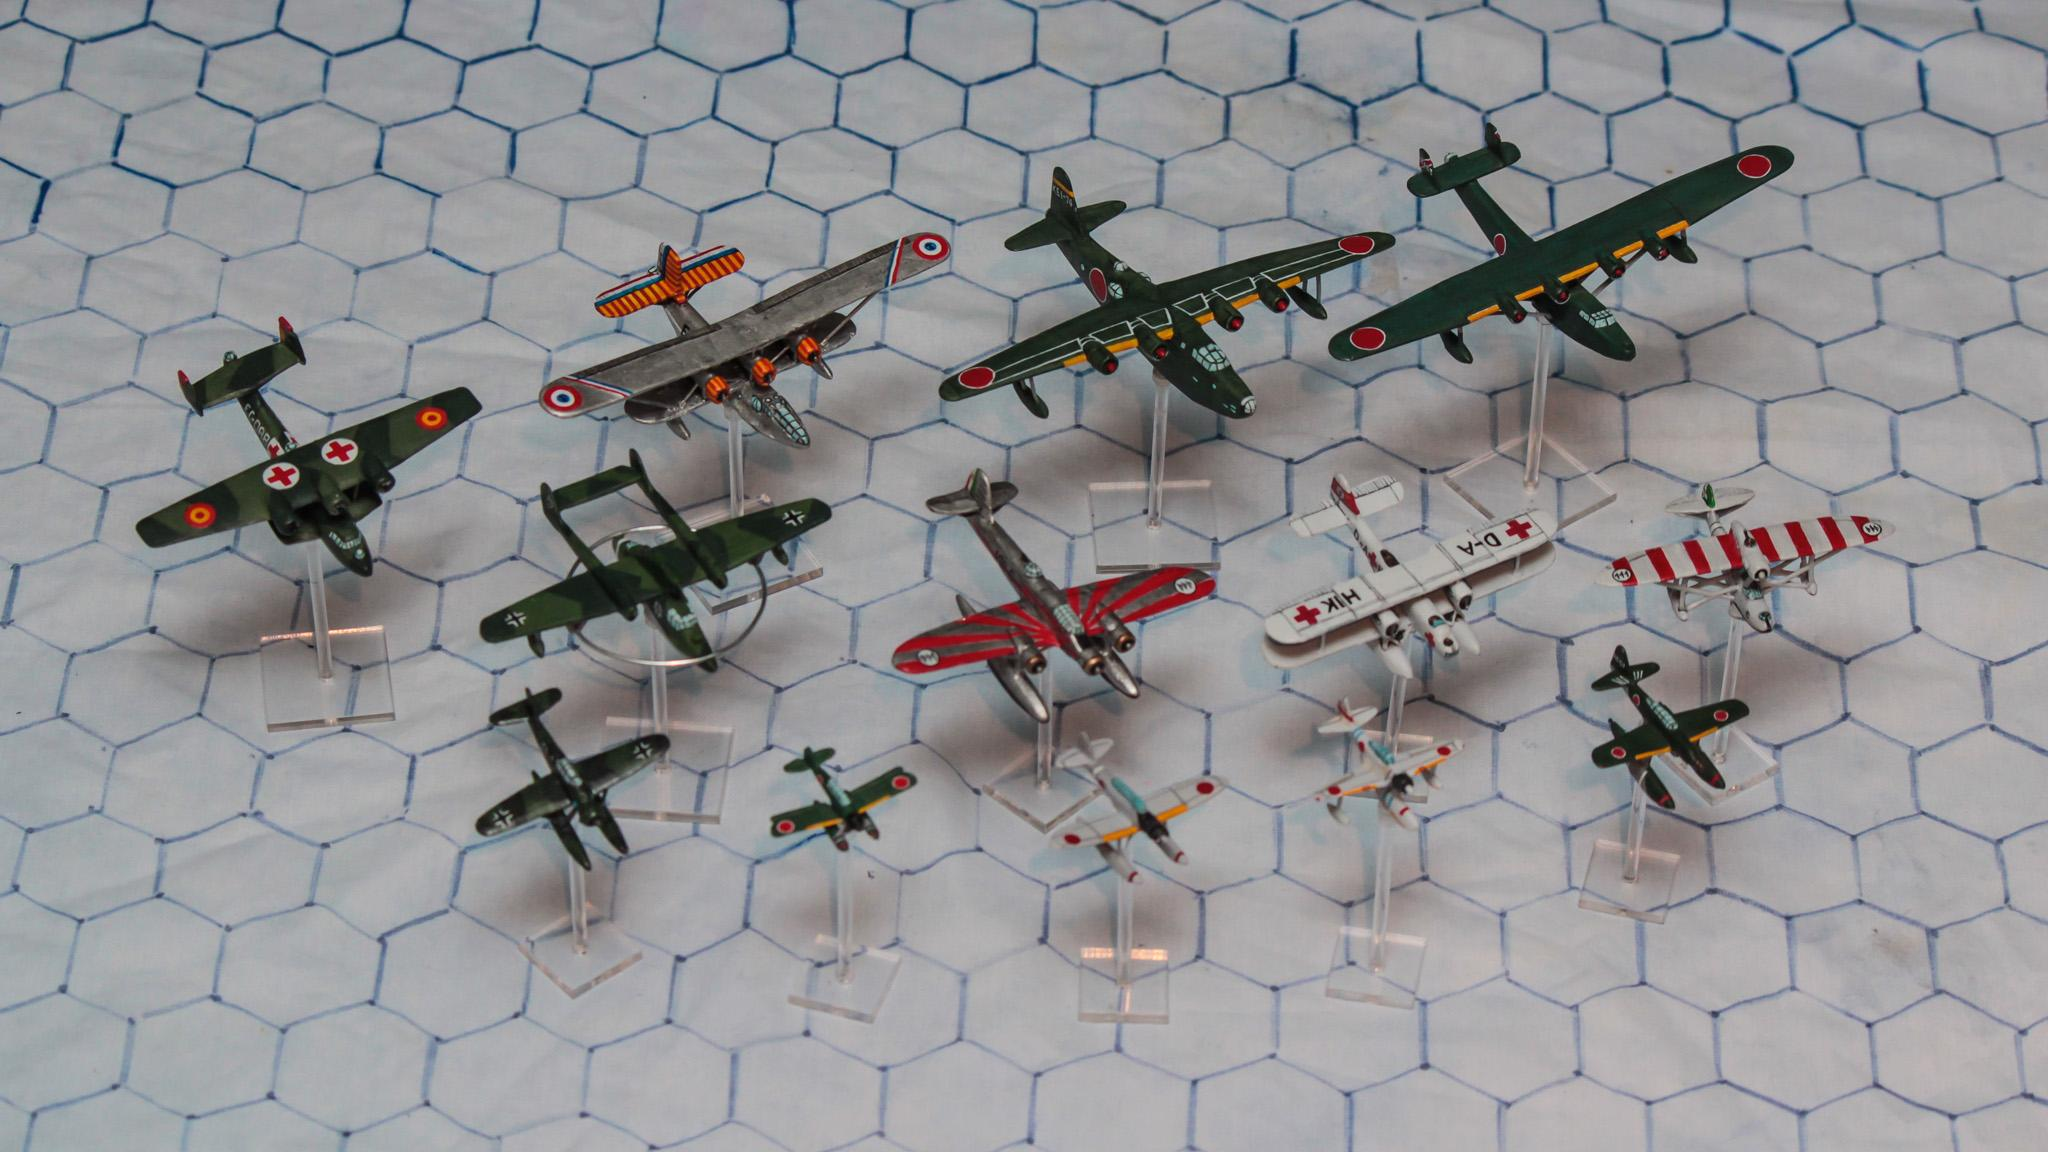 1:300 Scale, 6mm Scale, Air Combat, Axis, Float Plane, Flying Boat, French, Germans, Imperial Japan, Italian, Luftwaffe, Seaplane, World War 2